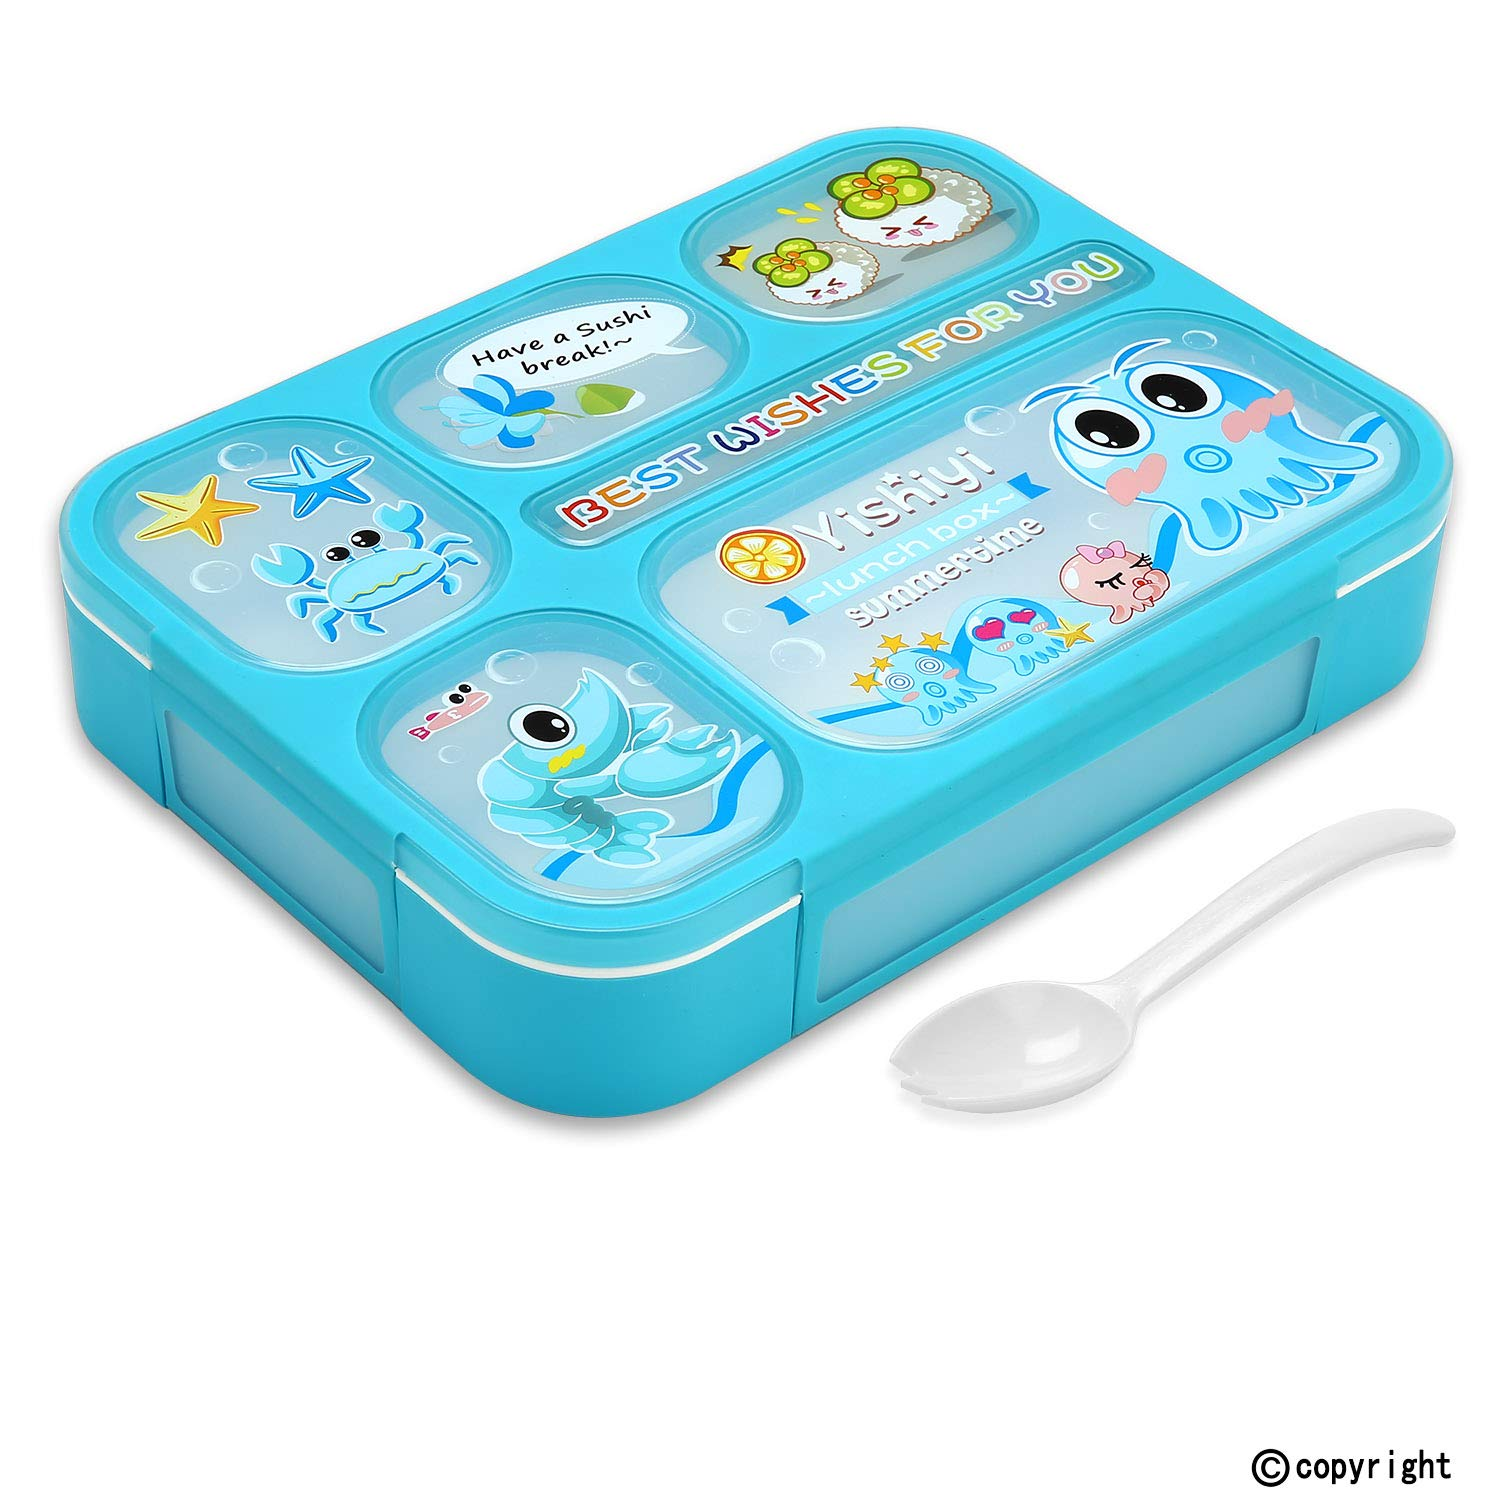 Leakproof Bento Lunch Box for Kids, FIOLOM 5 Compartments Divided Lunch Container Set with Spoon & Fork Cute Microwave Safe Meal Prep Box for Boys Girls Children School